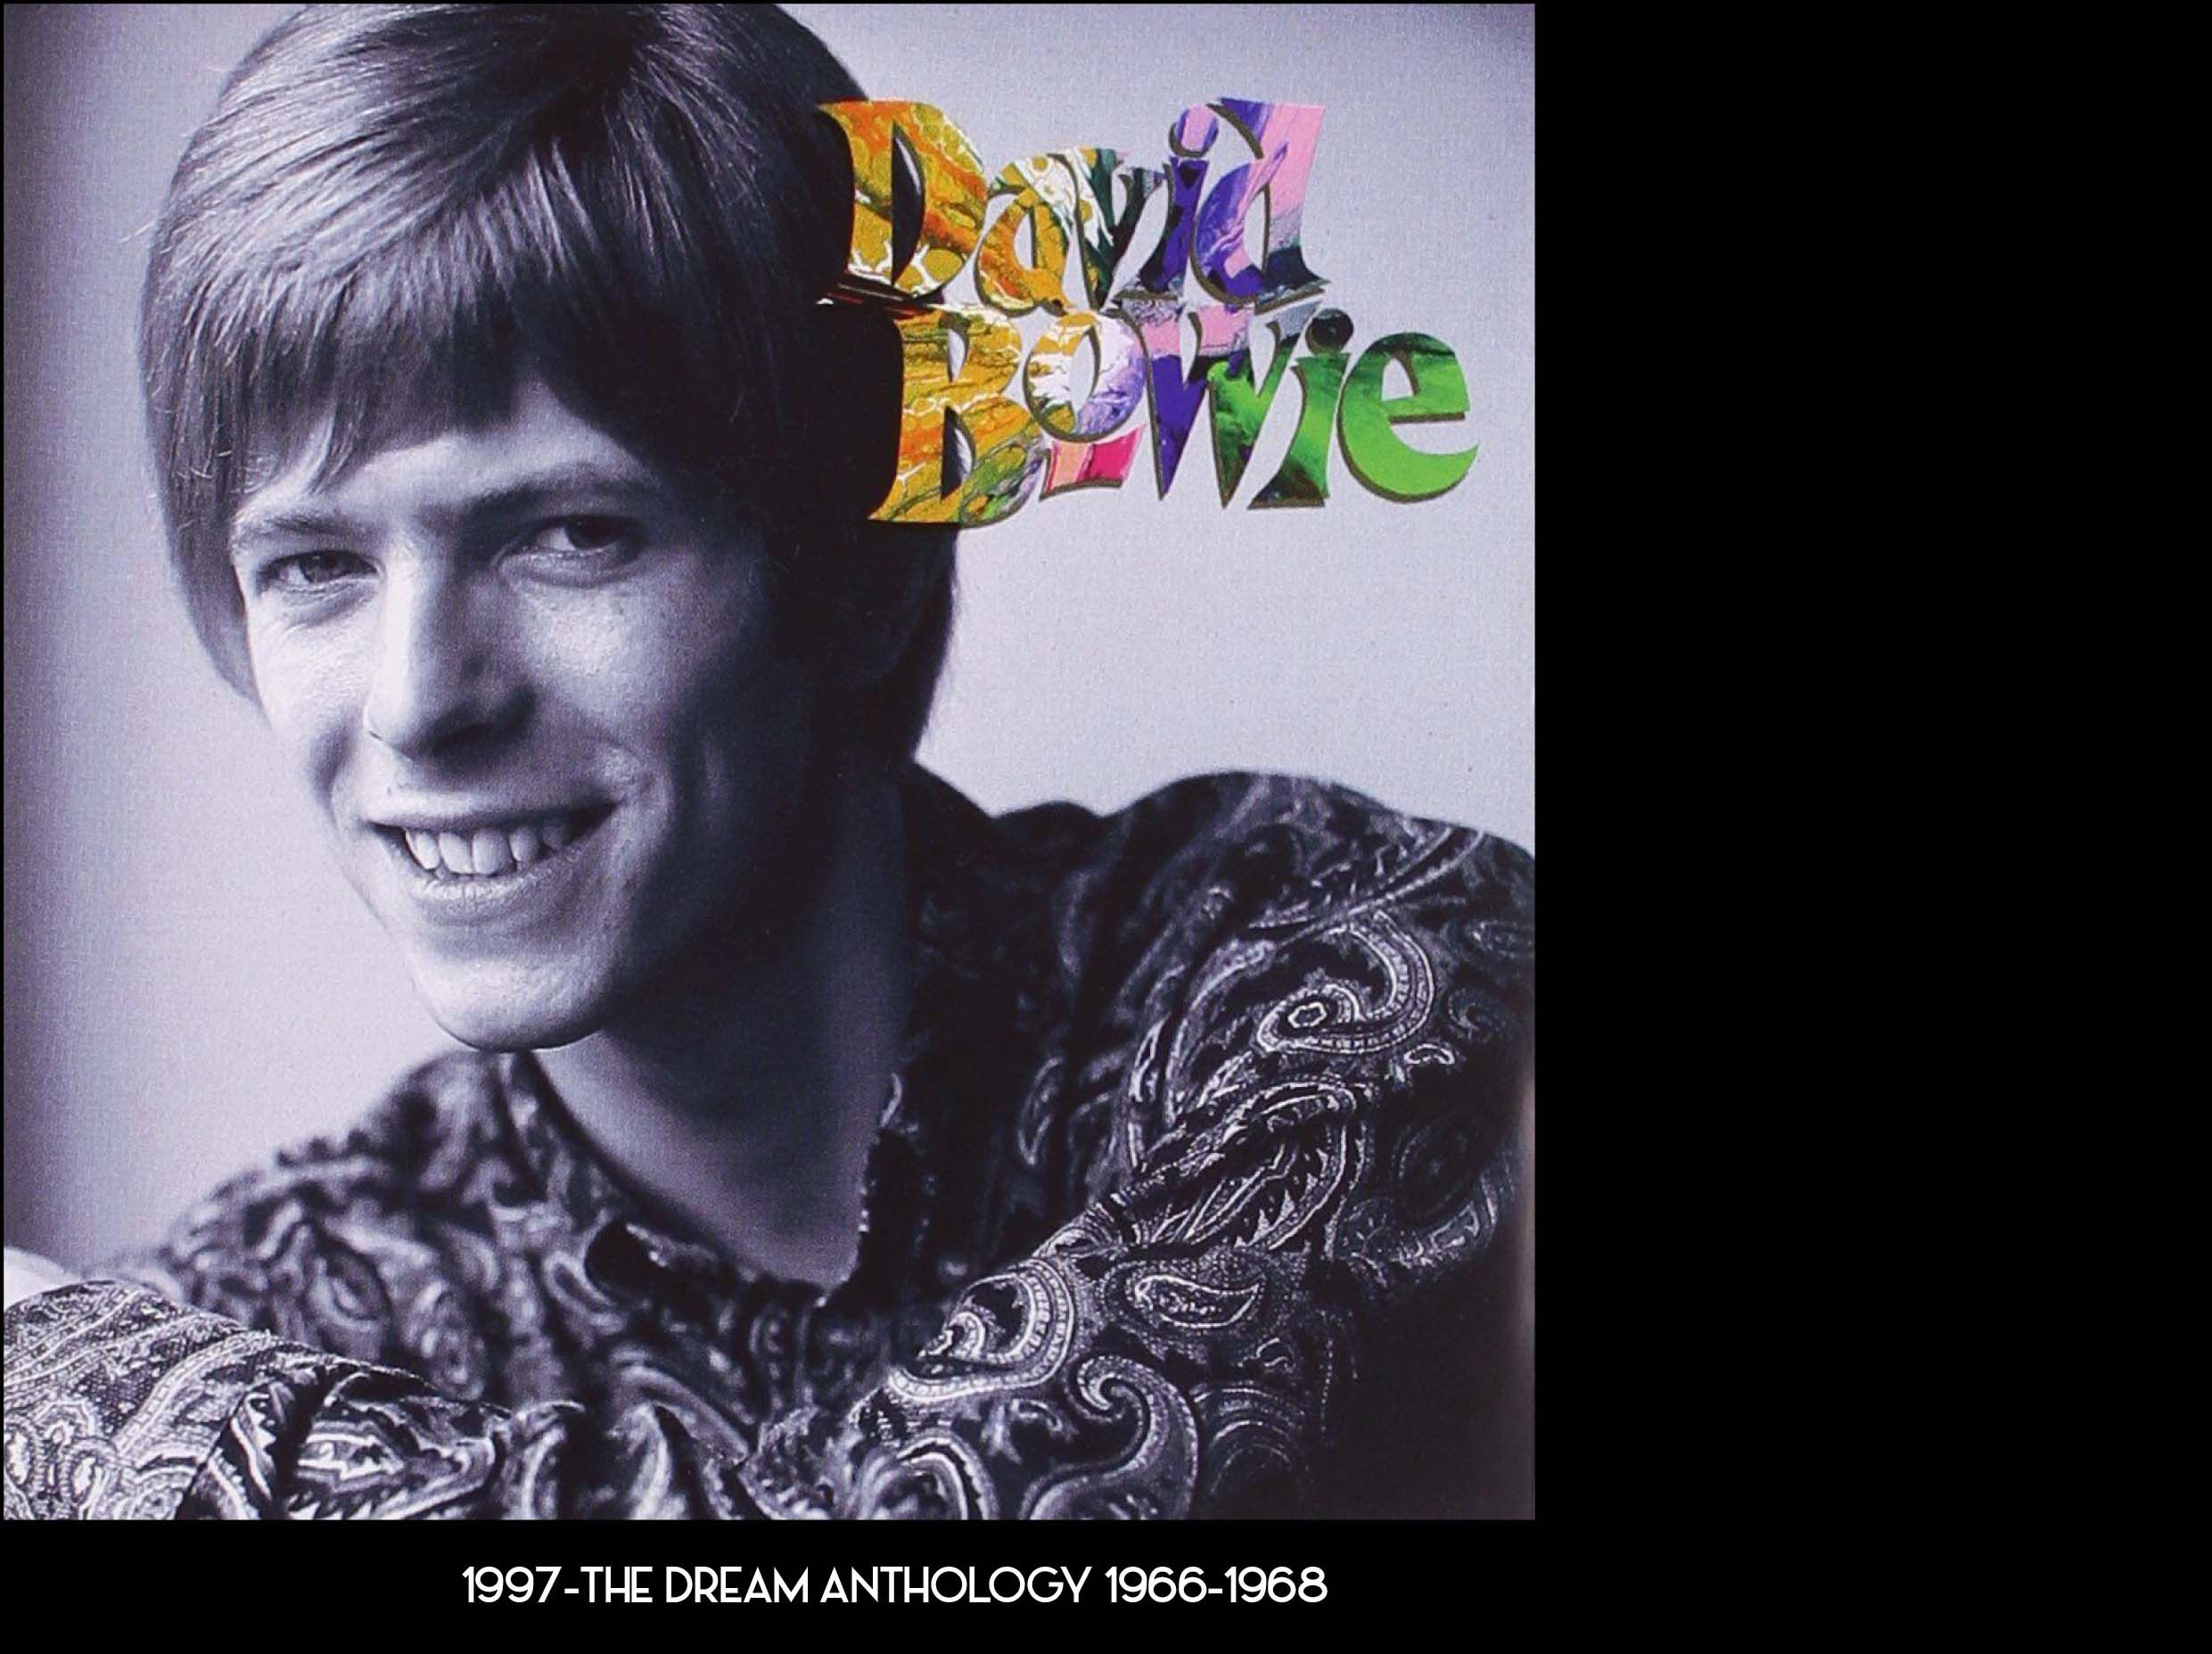 DAVID BOWIE 1997 - THE DREAM ANTHOLOGY 1966/1968